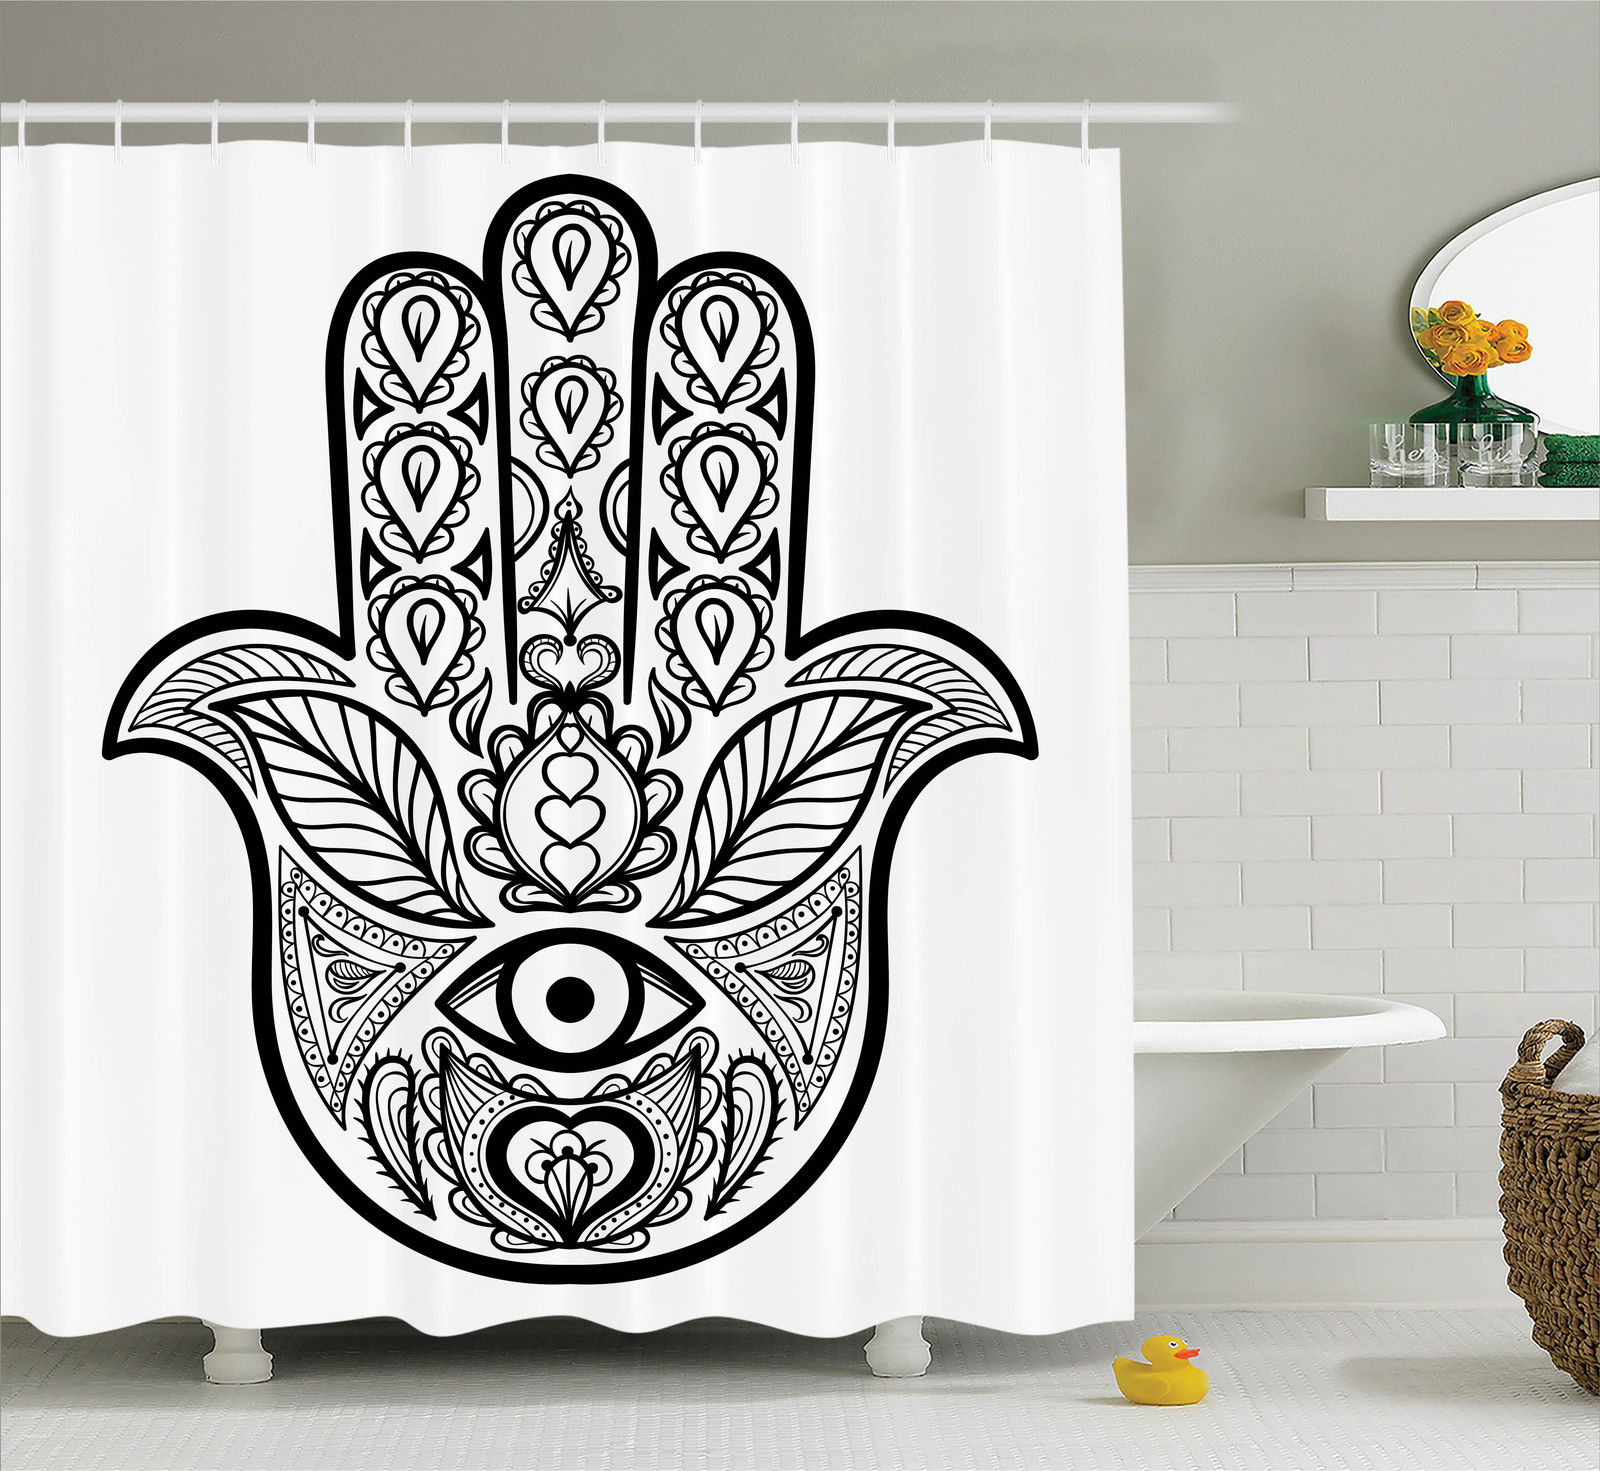 Mandala Decor Shower Curtain Set Hamsa Hand With Inner Eye Image Evil Eyes God Bless You Oriental Eastern Art Print Bathroom Accessories 69w X 70l Inches By Ambesonne Walmart Com Walmart Com